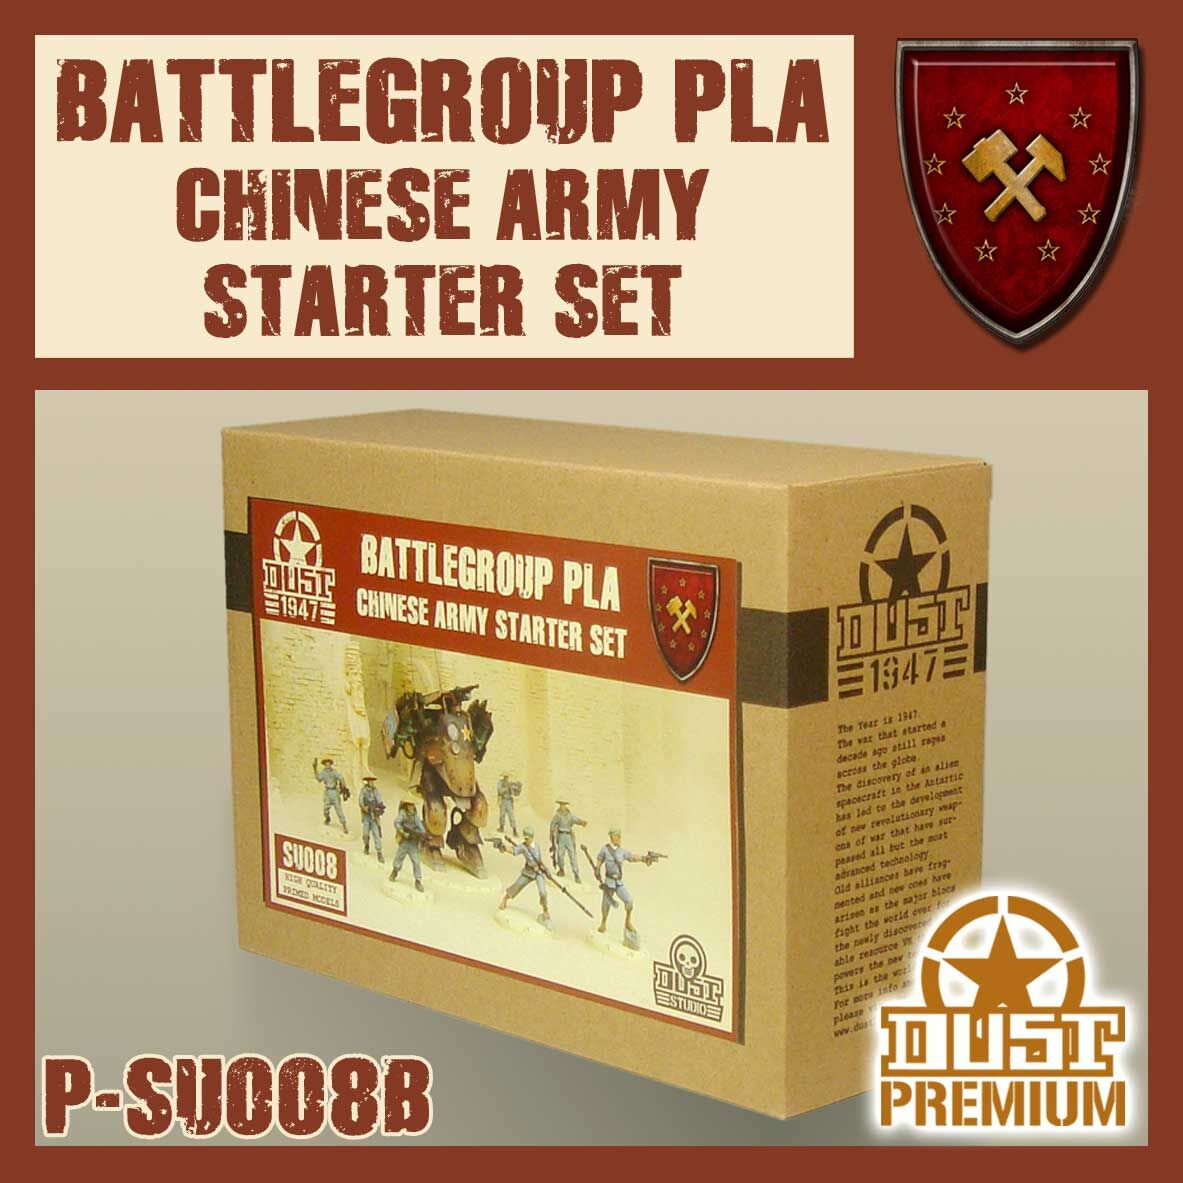 Battlegroup PLA - Premium